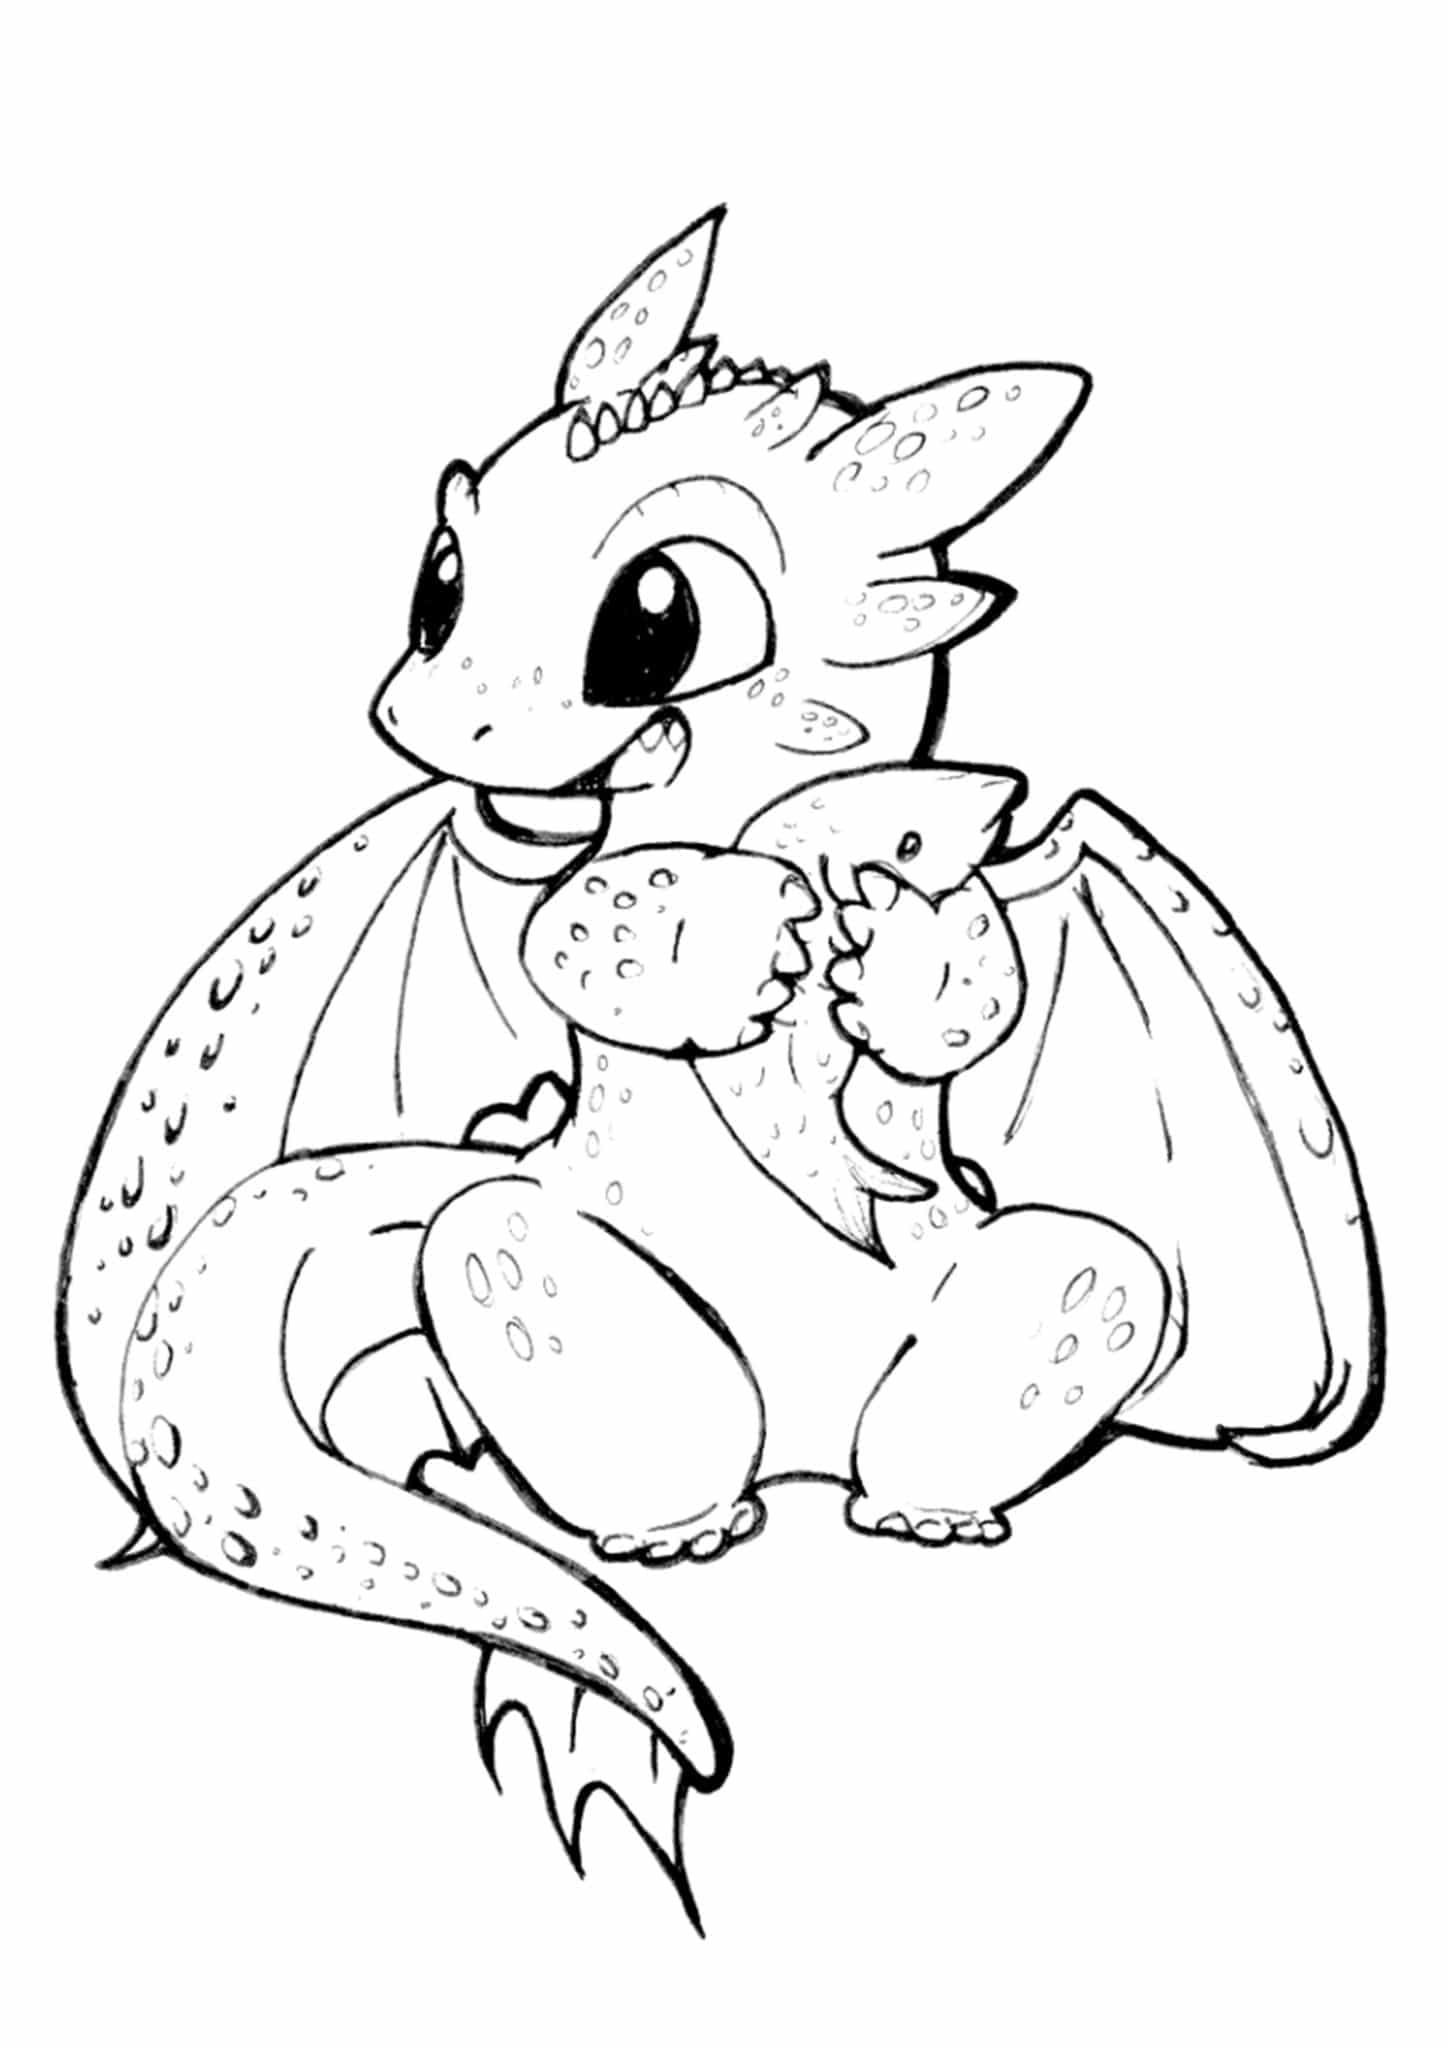 Free Easy To Print Dragon Coloring Pages In 2021 Dragon Coloring Page Cartoon Coloring Pages Cute Dragons